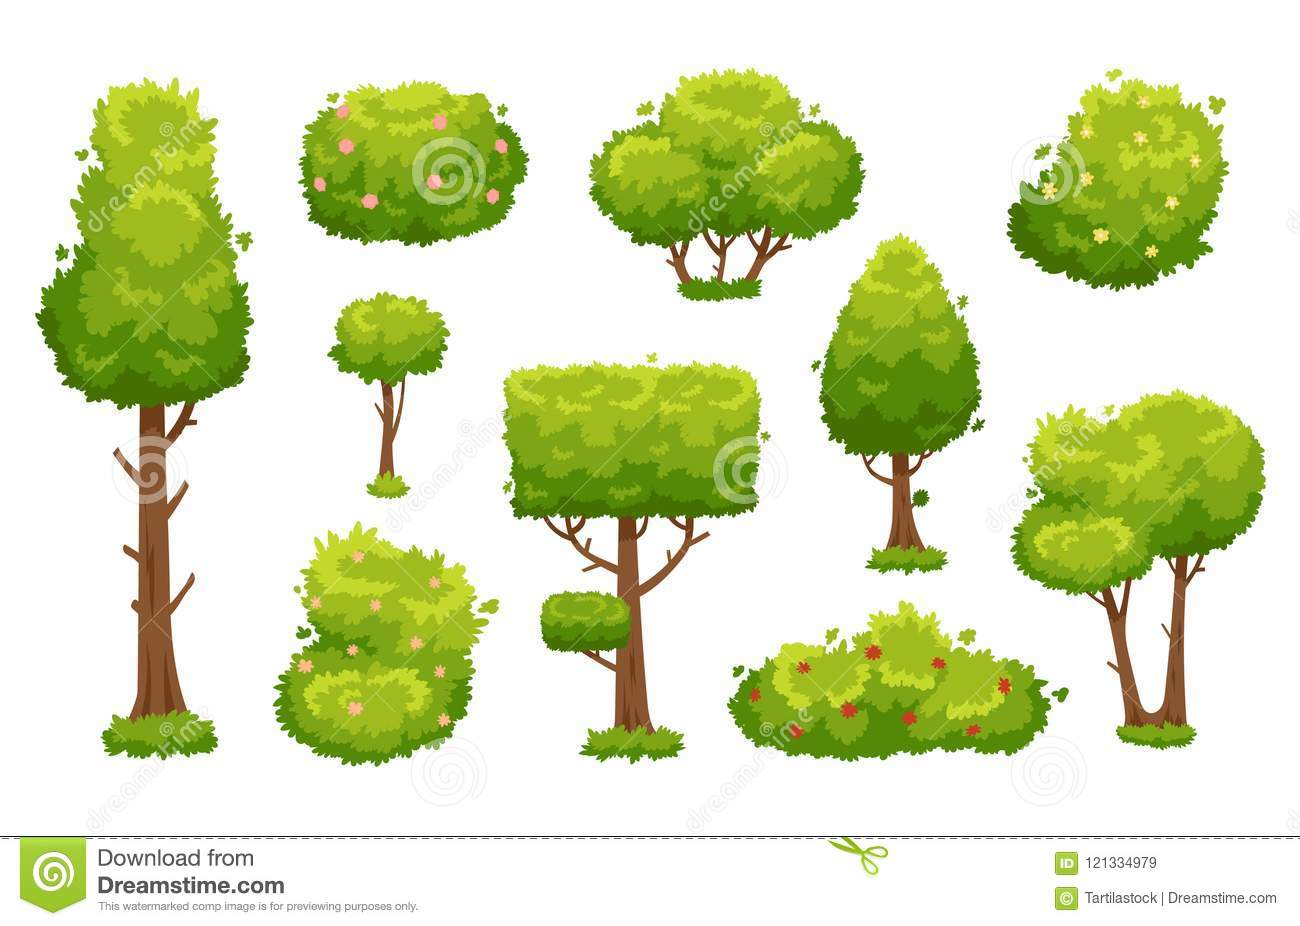 Cartoon Trees And Bushes Green Plants With Flowers For